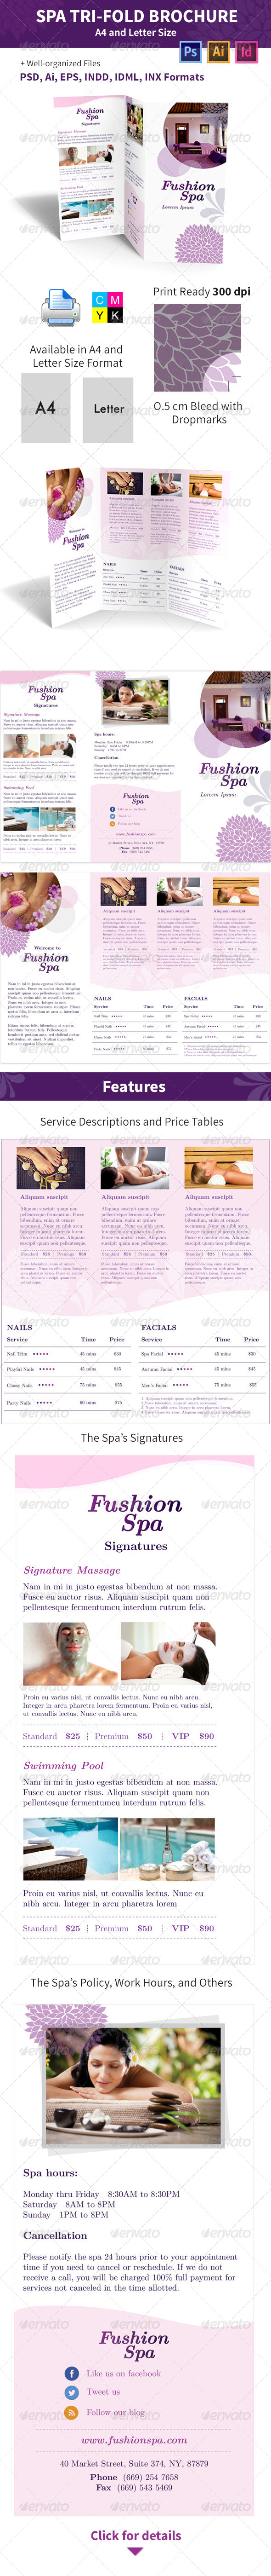 GraphicRiver Spa Trifold Brochure A4 and Letter Sizes 6202812